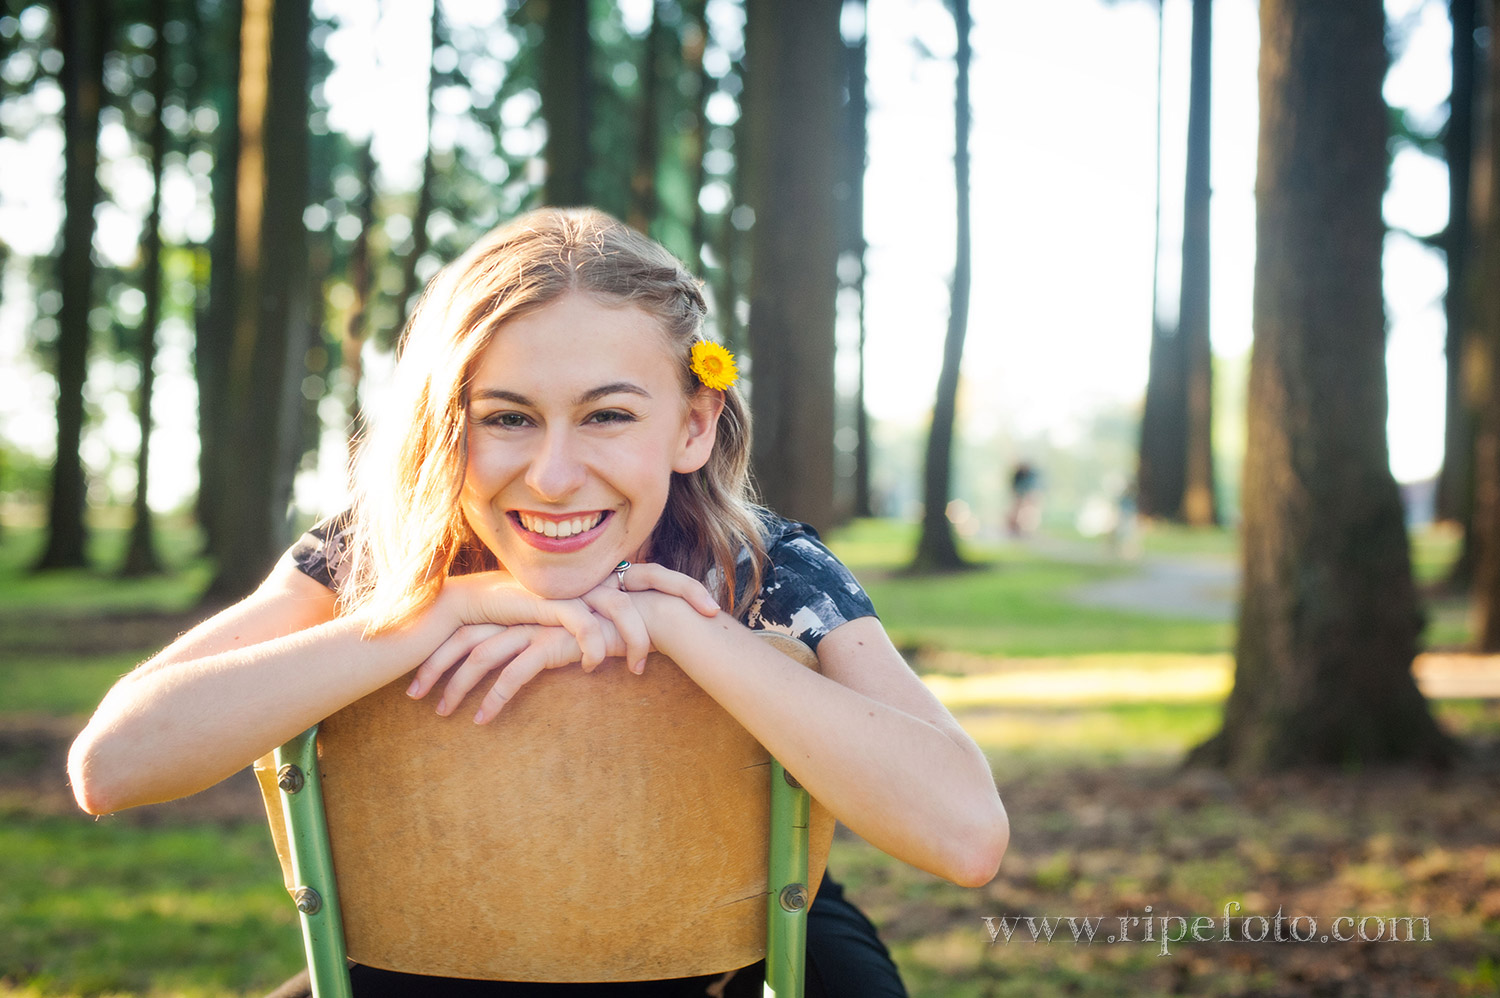 High school senior portrait of girl in wooded area by senior portrait photographers at Ripe Photography in Portland, Oregon.